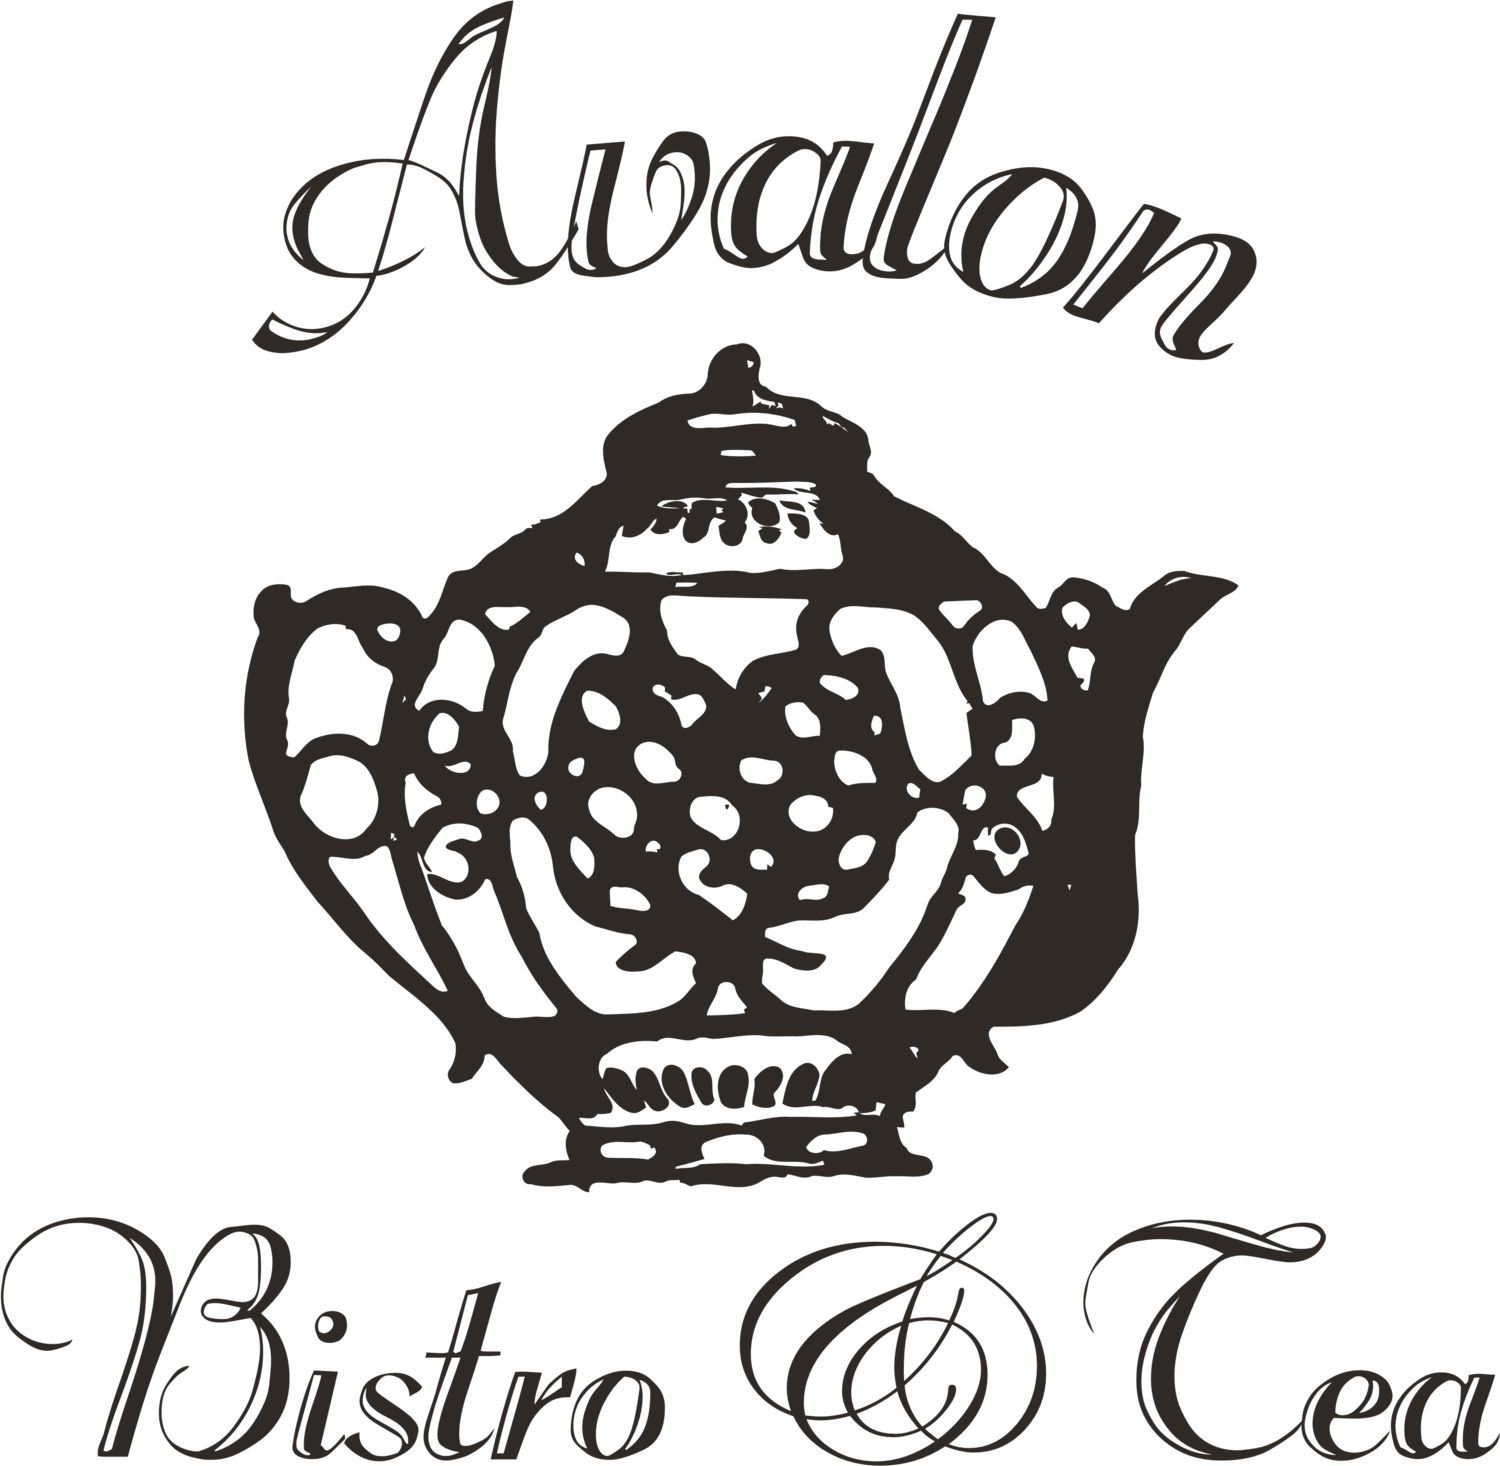 Avalon Bistro & Tea